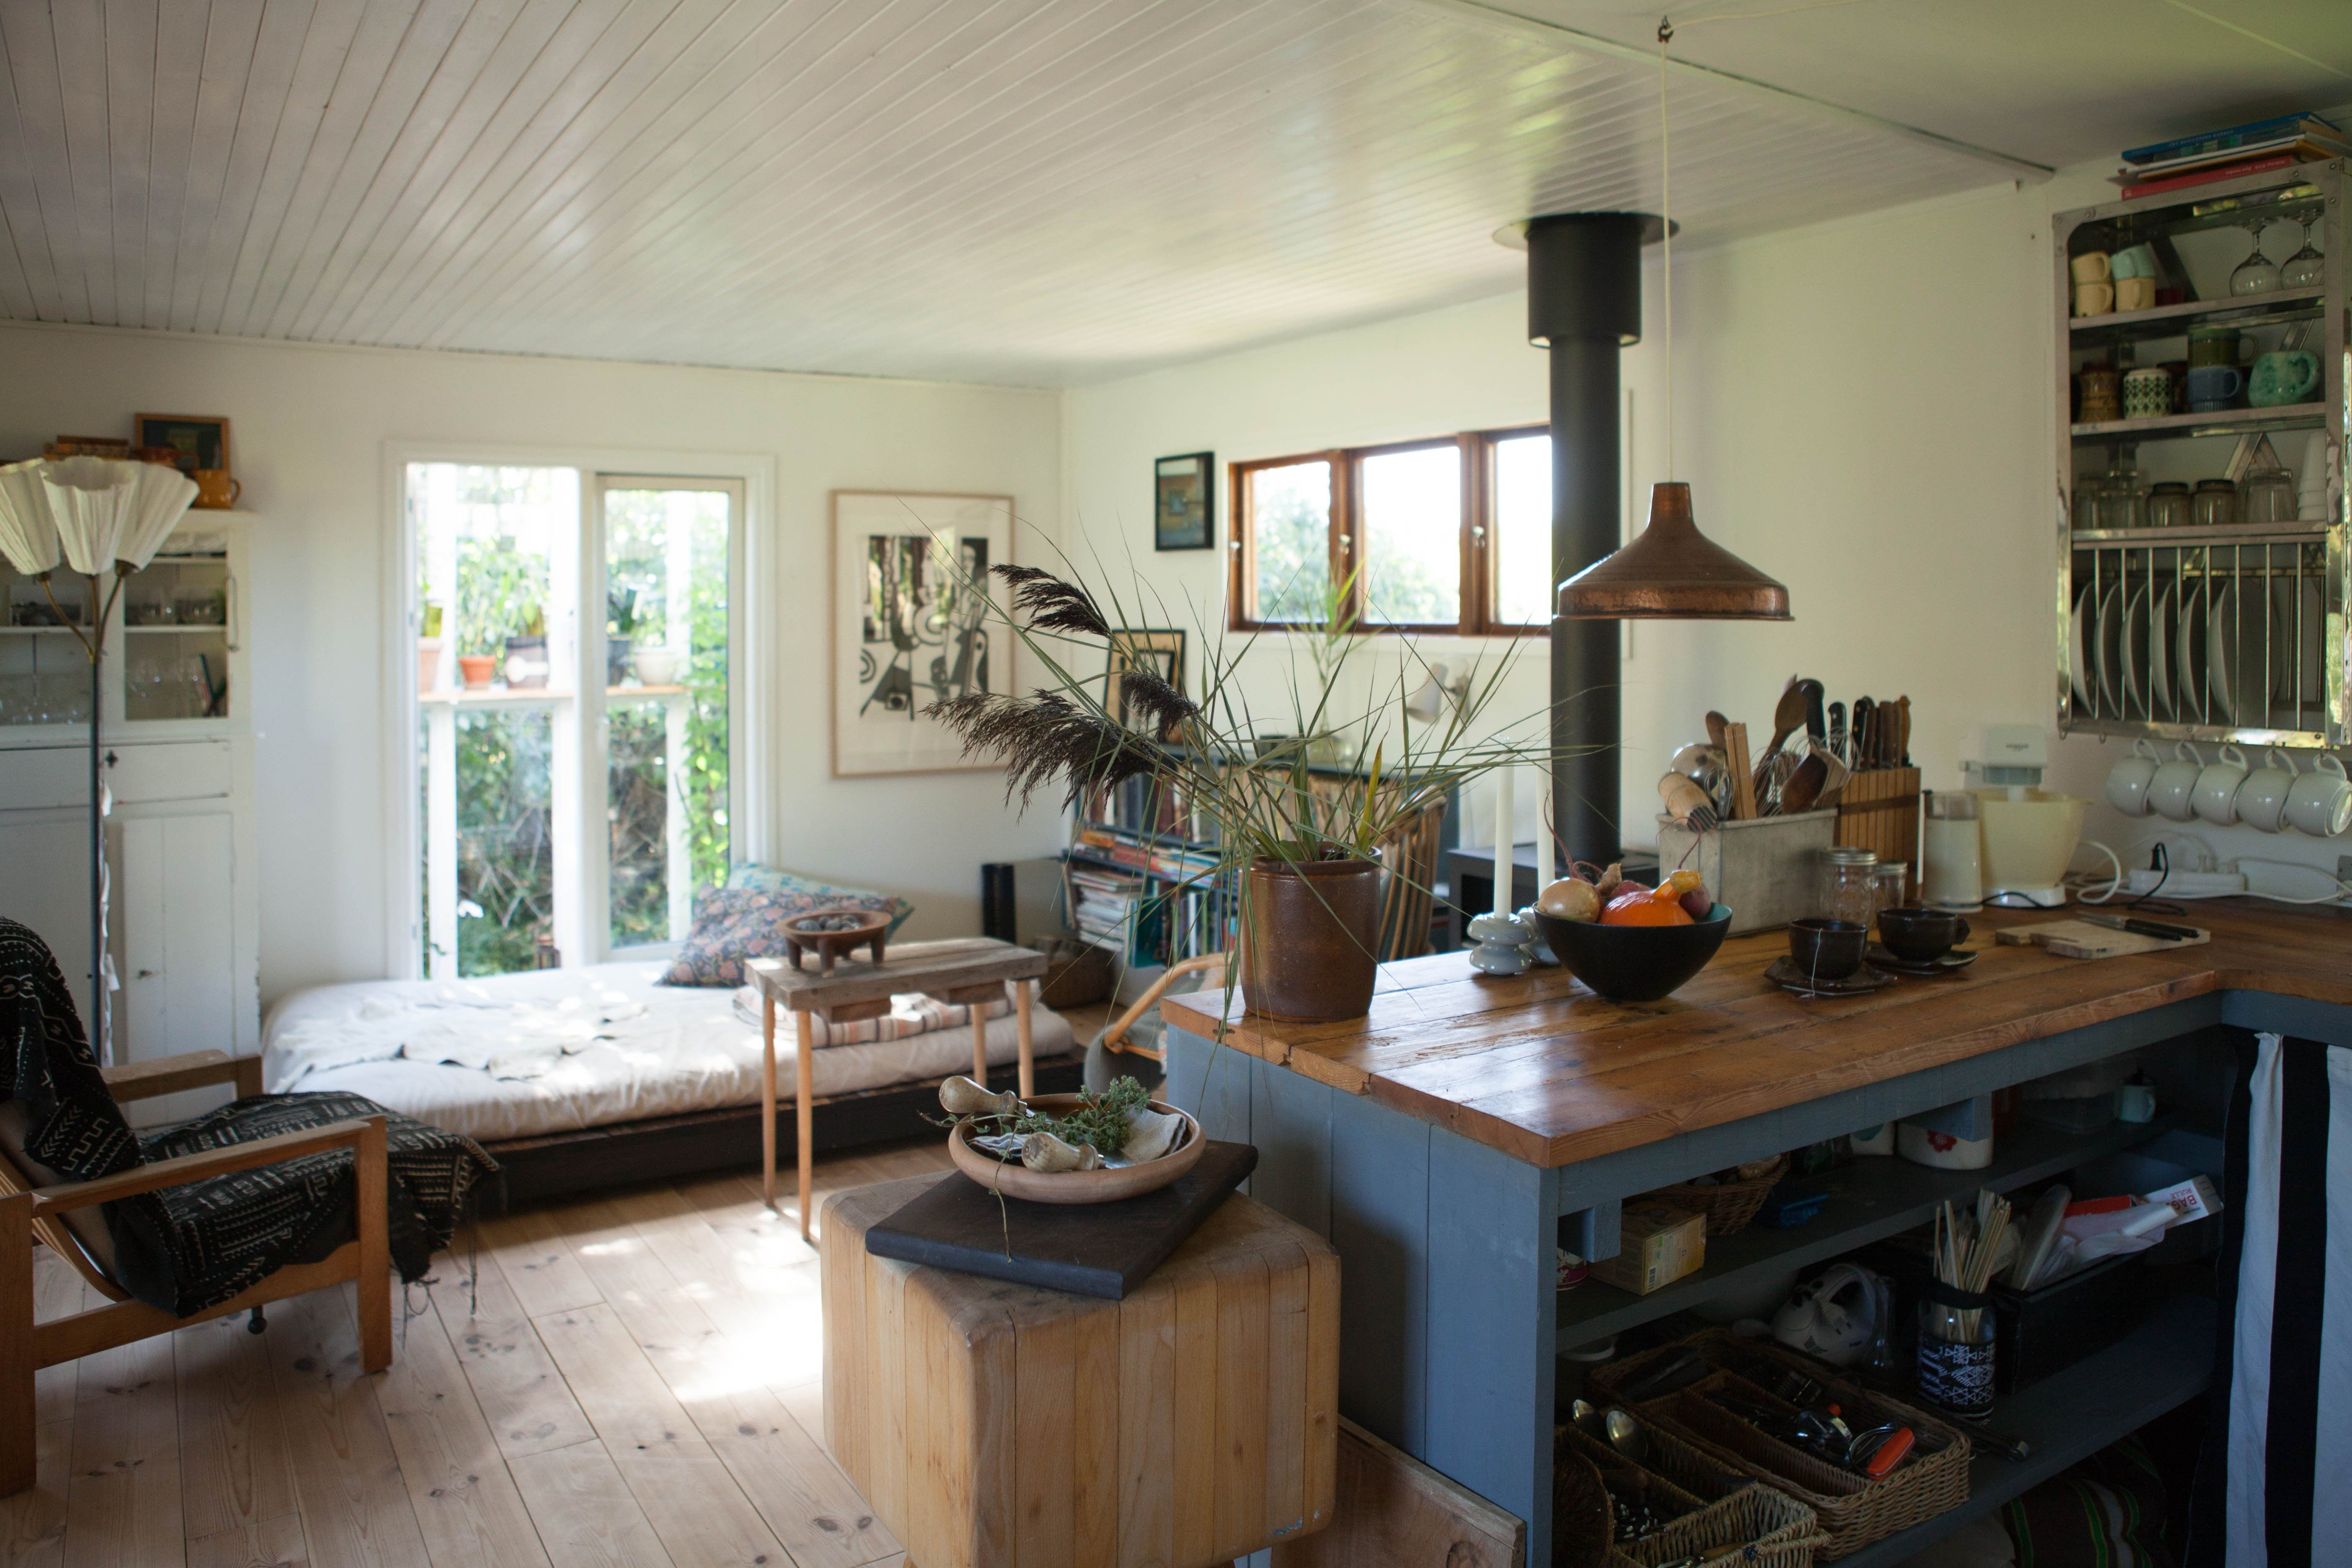 House Tour A Countryside Summerhouse In Denmark Apartment Therapy Summer House Kitchen Island Design Cozy Kitchen